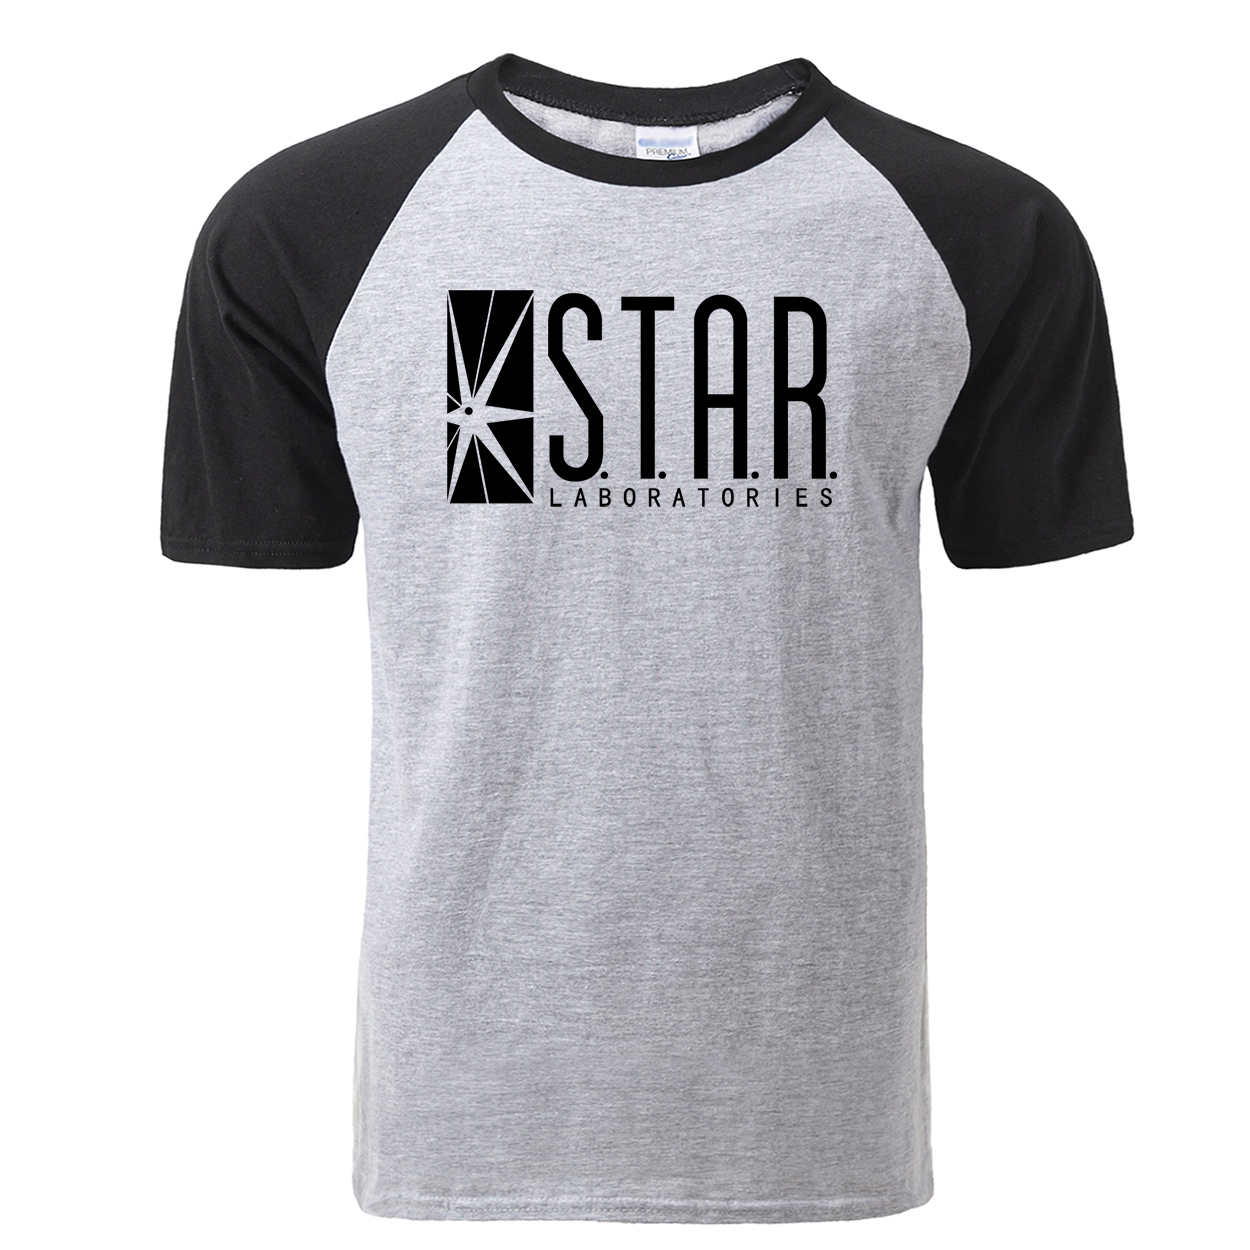 Fashion STAR Labs Raglan T Shirt Men Summer Jumper The Flash Gotham City Comic Books Superman Tv Series T-shirt Streetwear Tees image